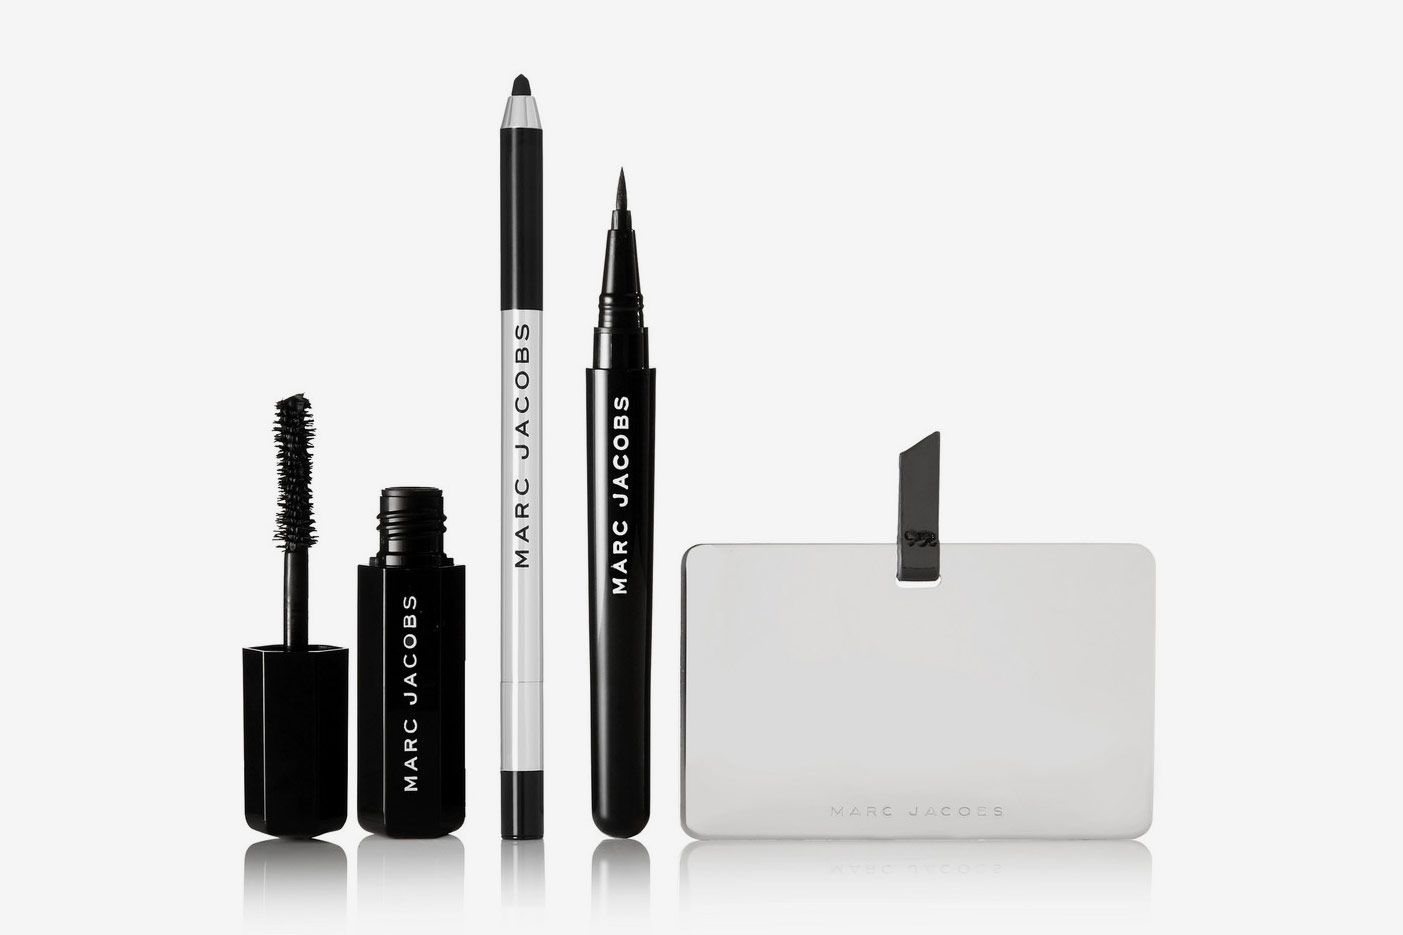 Marc Jacobs eyeliner set